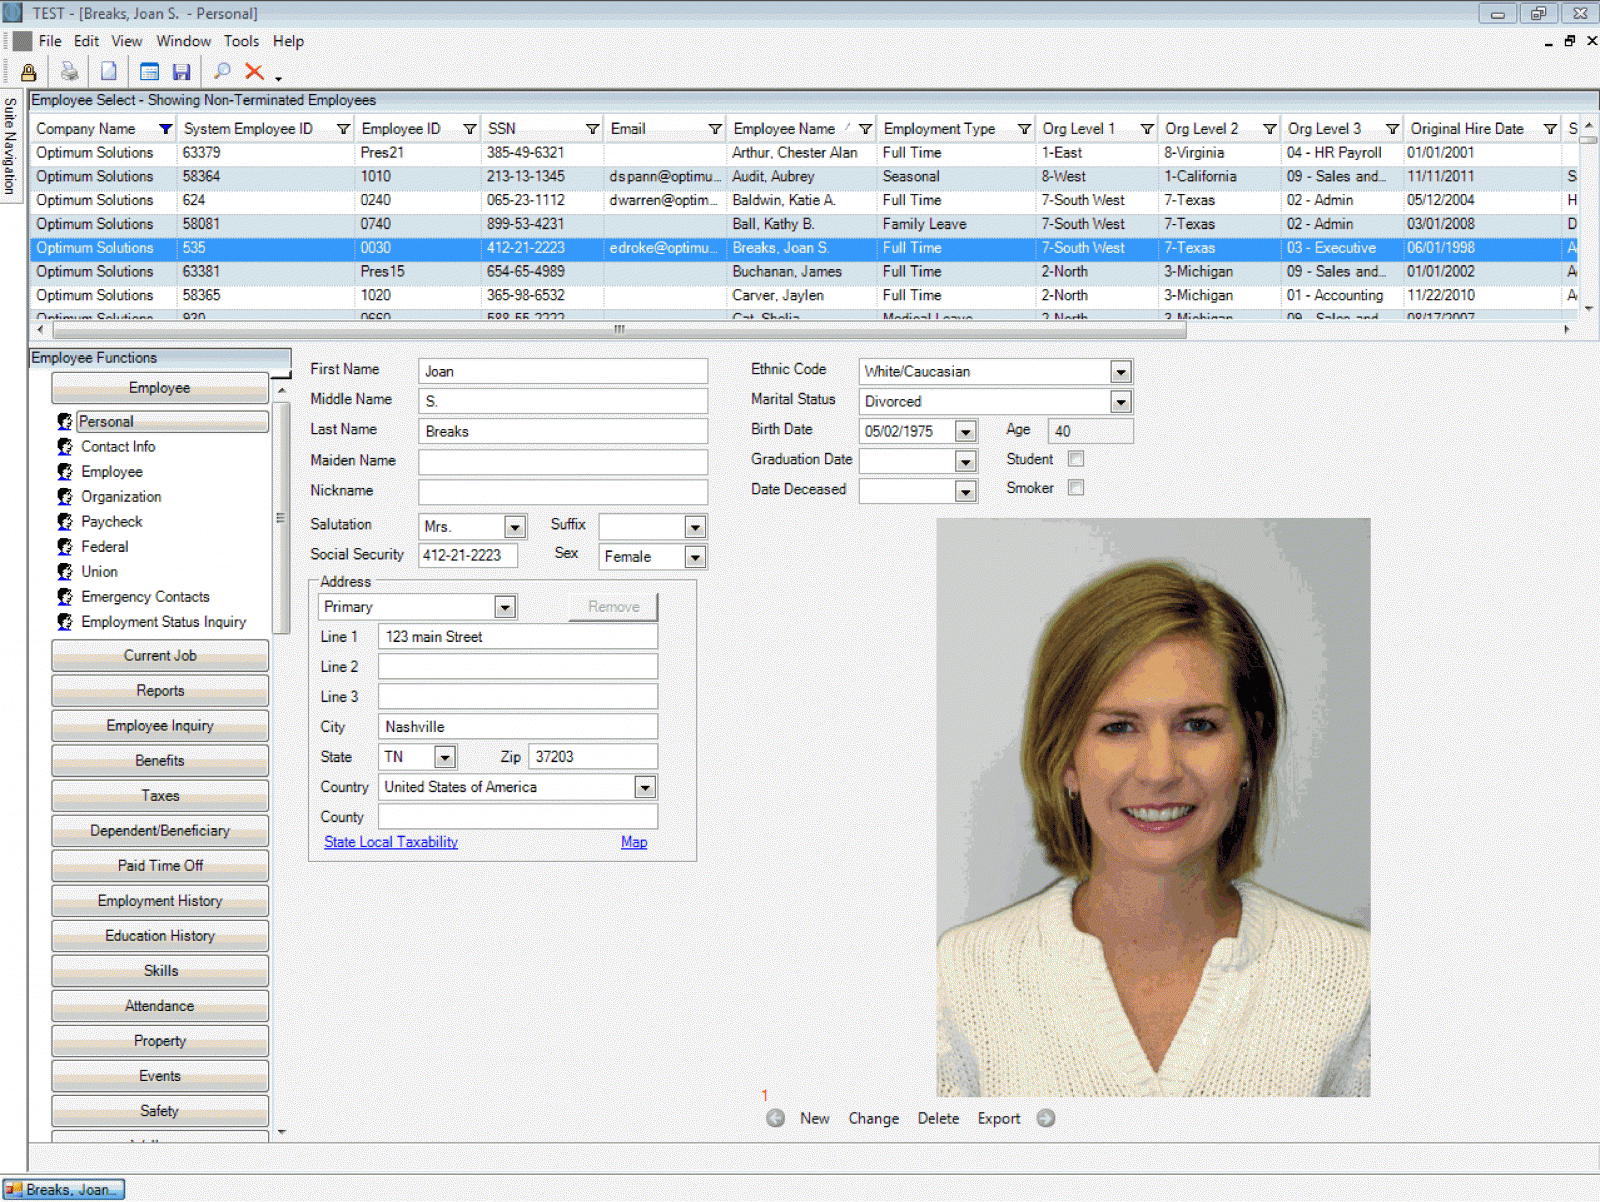 Optimum HR's client server interface with an example of employee personal info fields